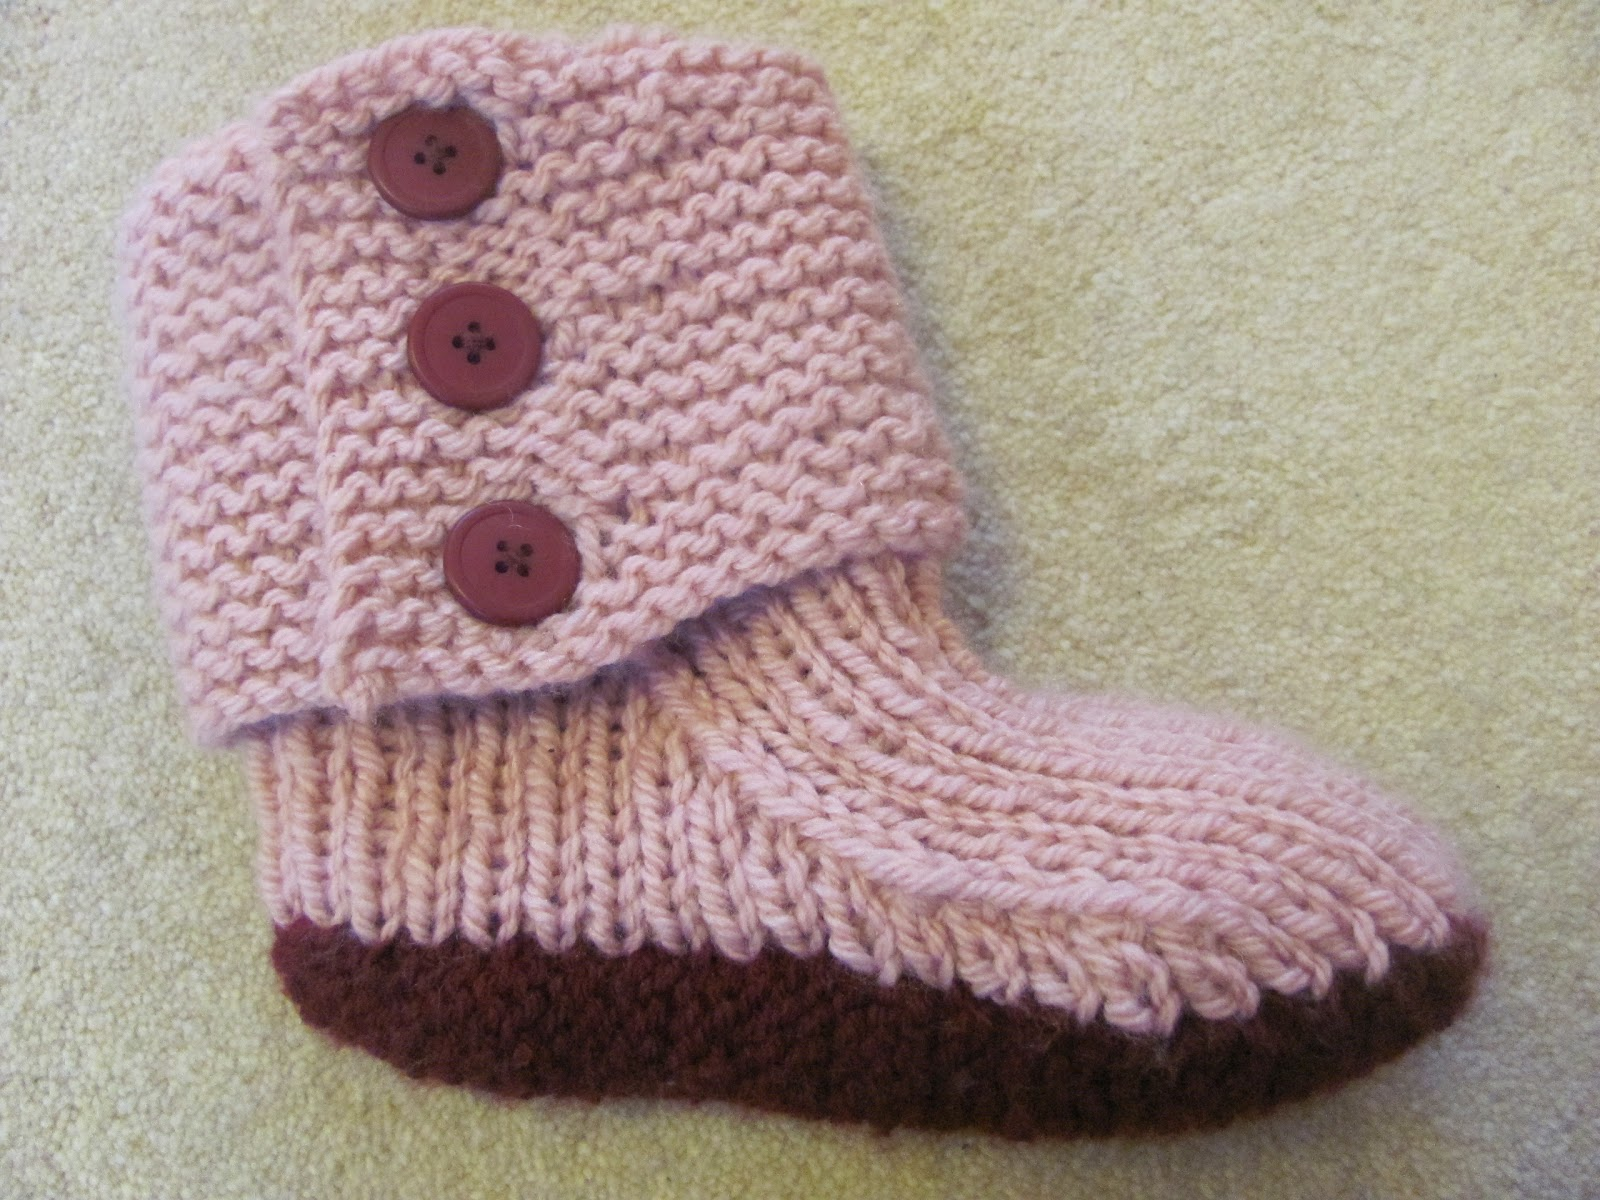 Knit Slippers Pattern : The Bookworm: Christmas Knitting